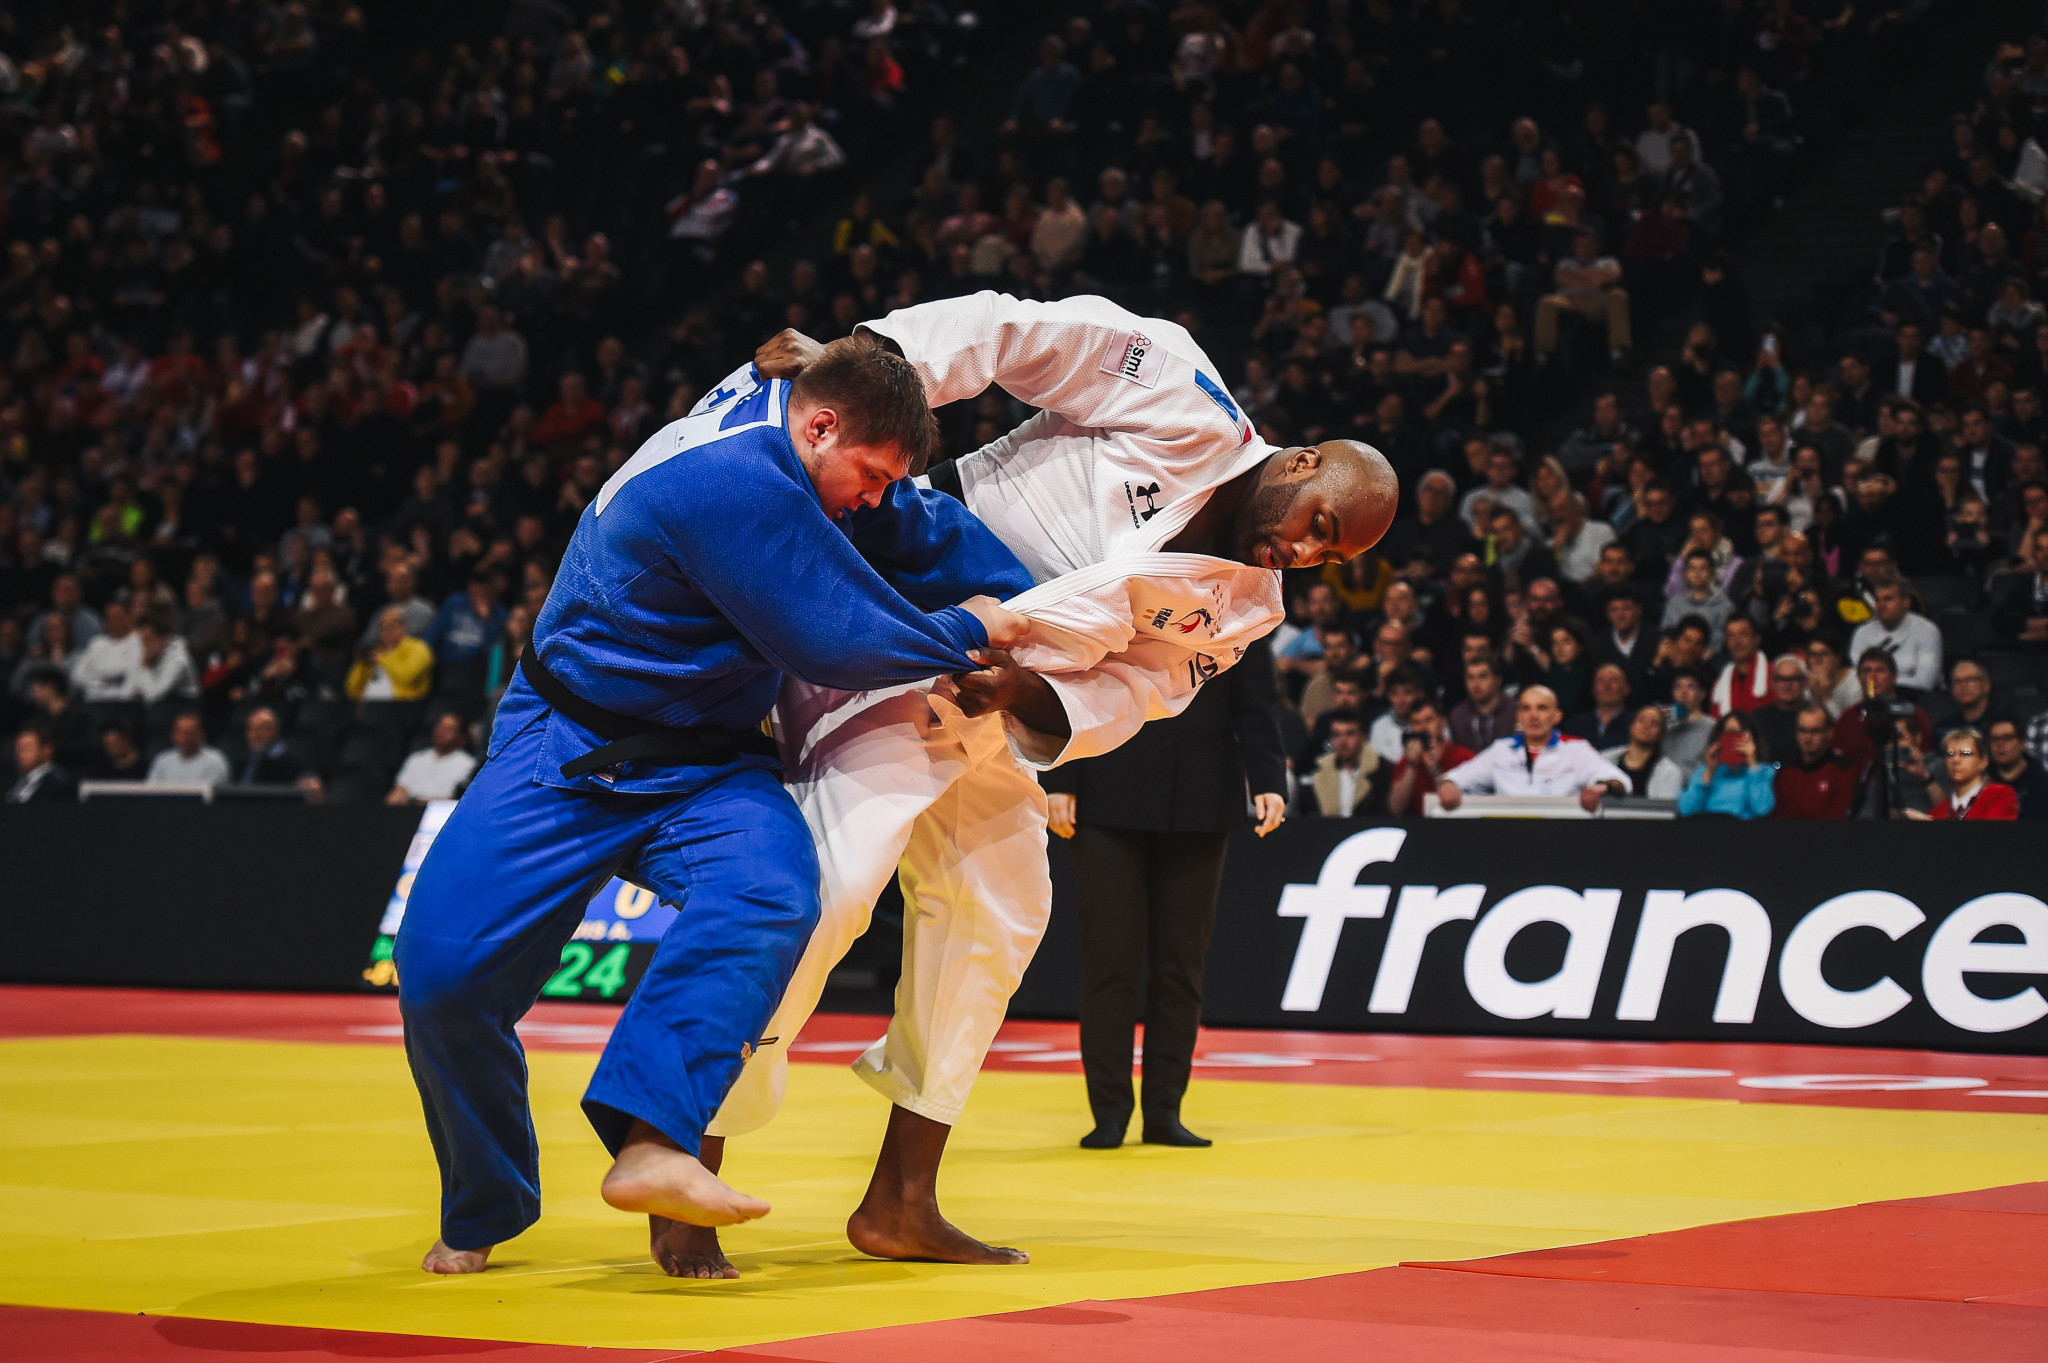 International Judo Federation clarifies decision to postpone Paris Grand Slam